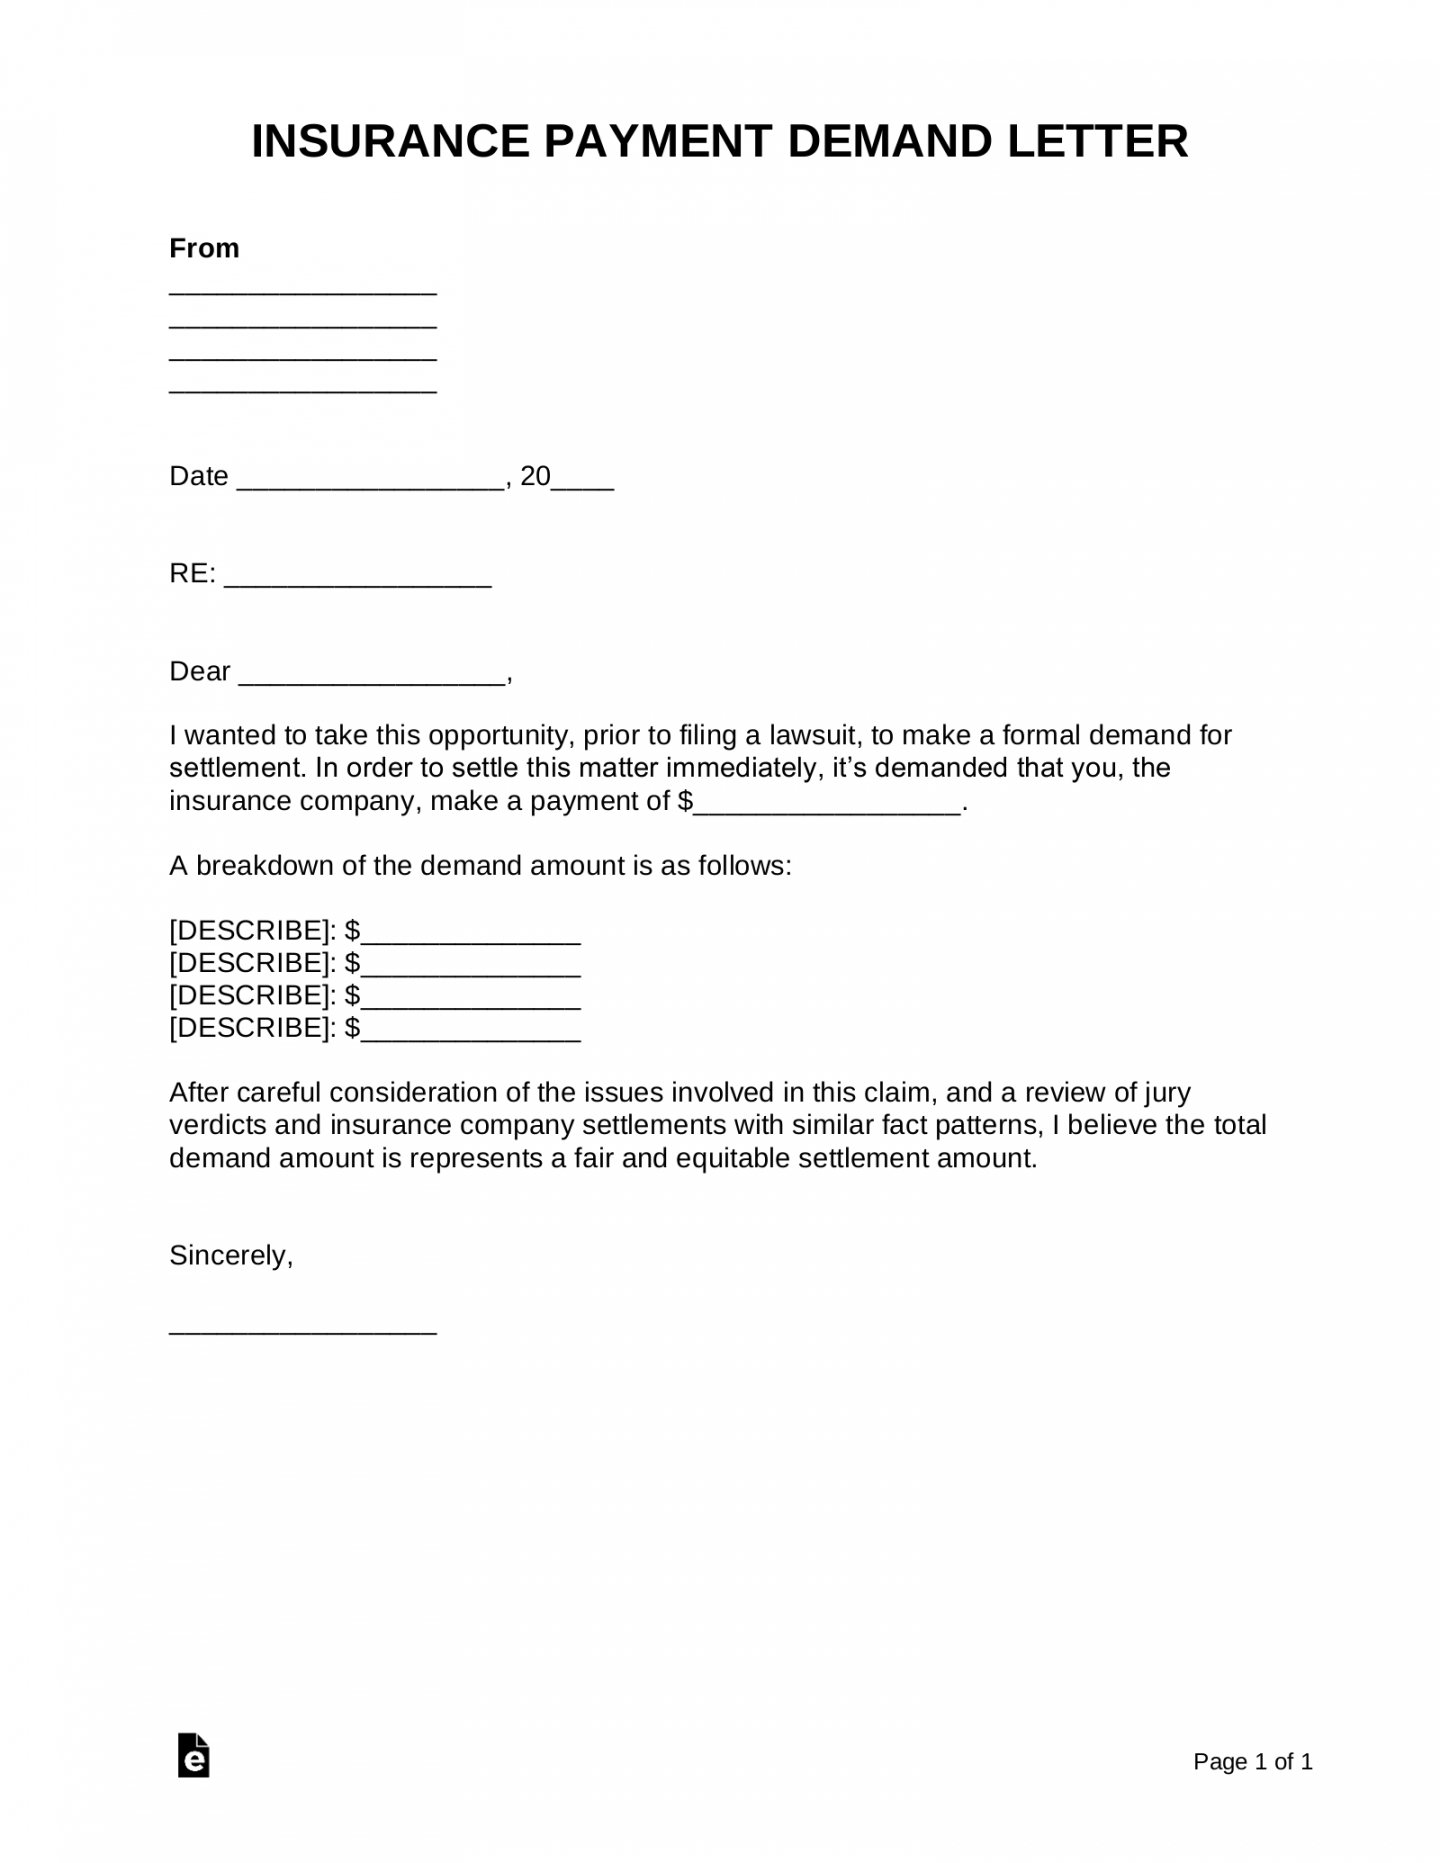 sample free insurance company demand letter  pdf  word  eforms demand letter to insurance company for auto accident example